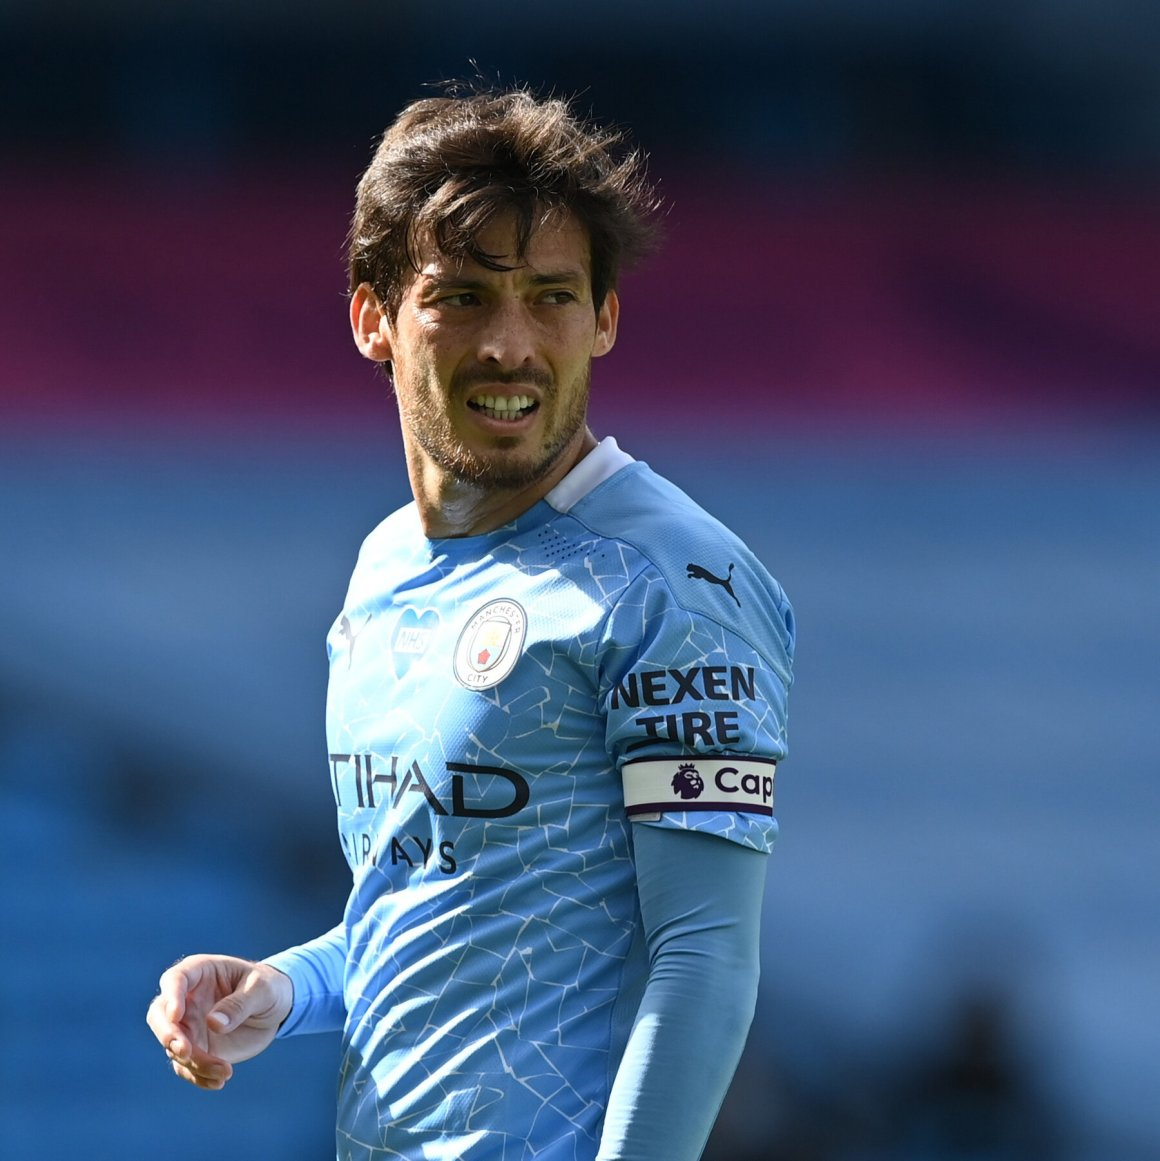 We Know Little About David Silva. That's How He Wanted It. - The New York Times